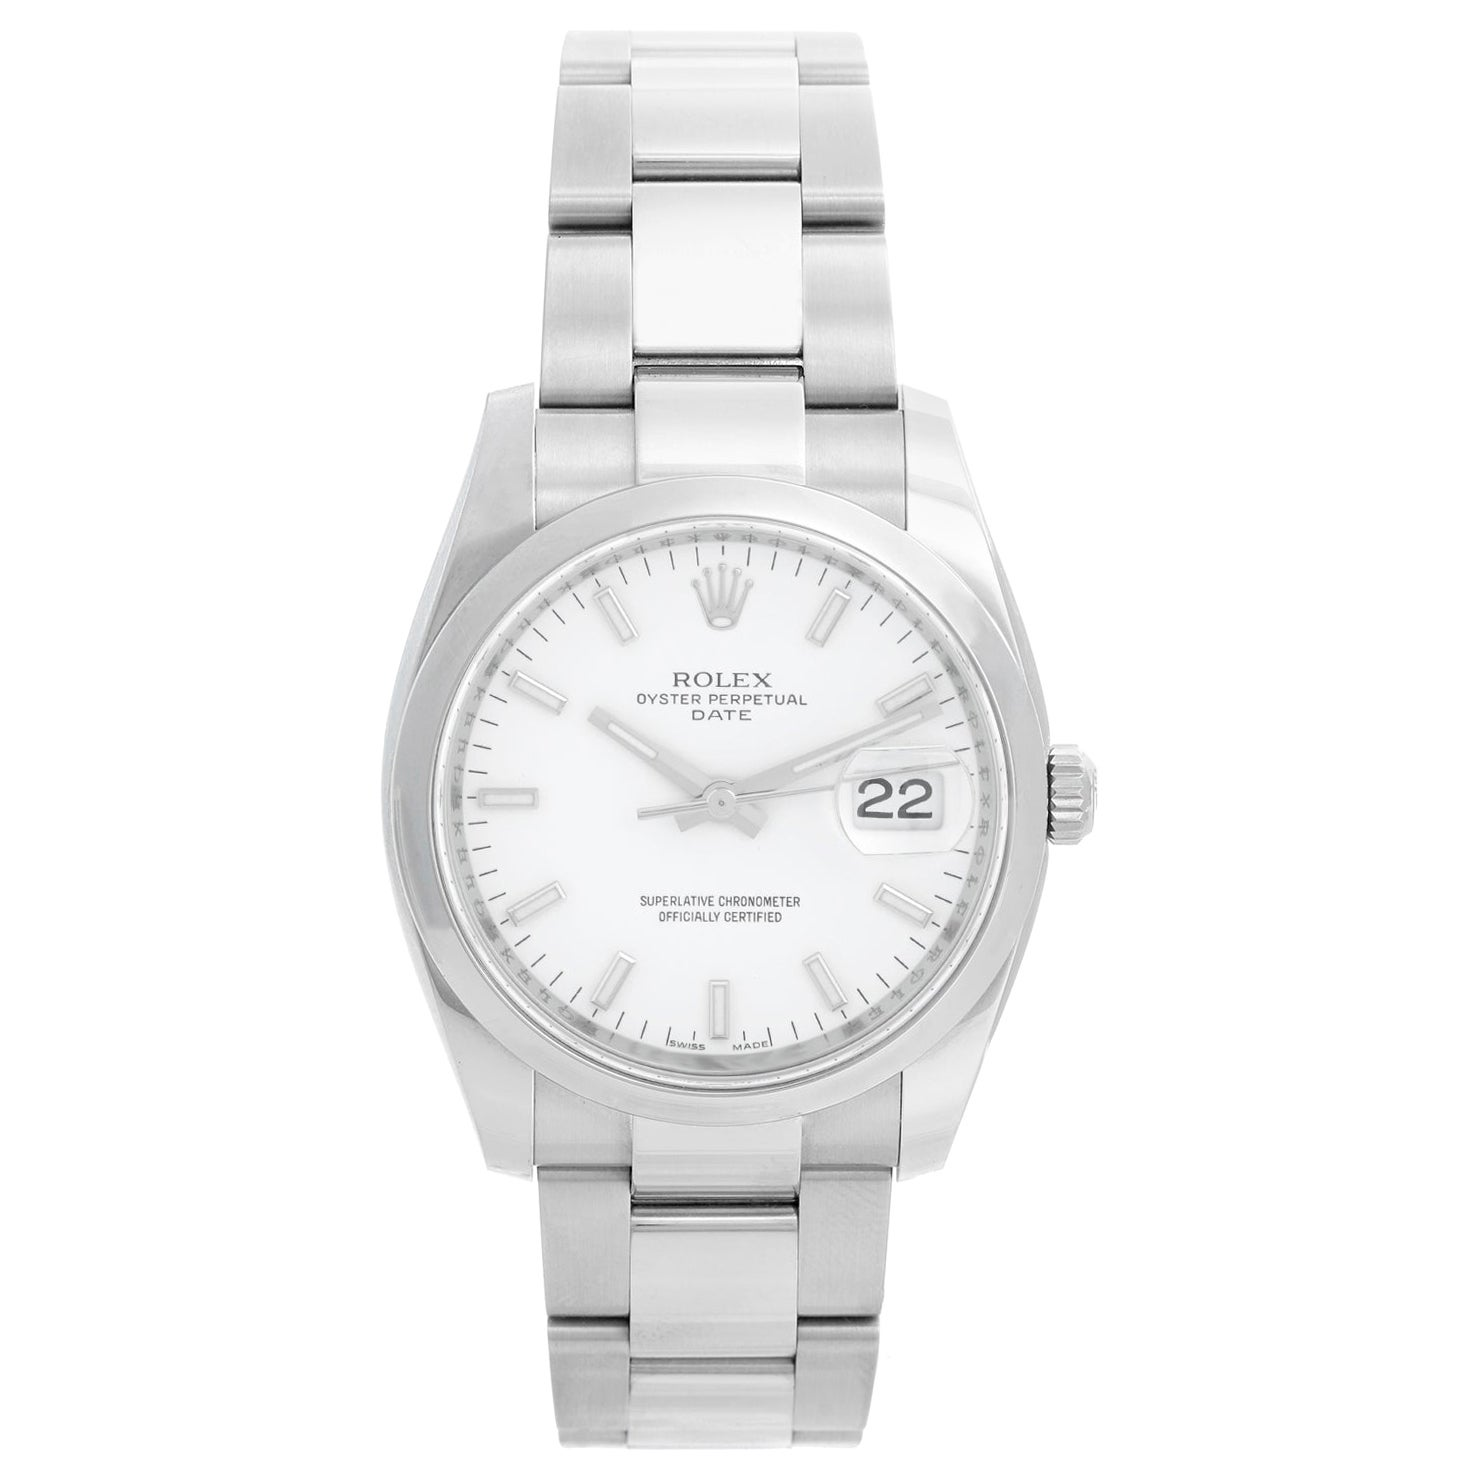 Rolex Date Oyster Perpetual Men's Watch 115200